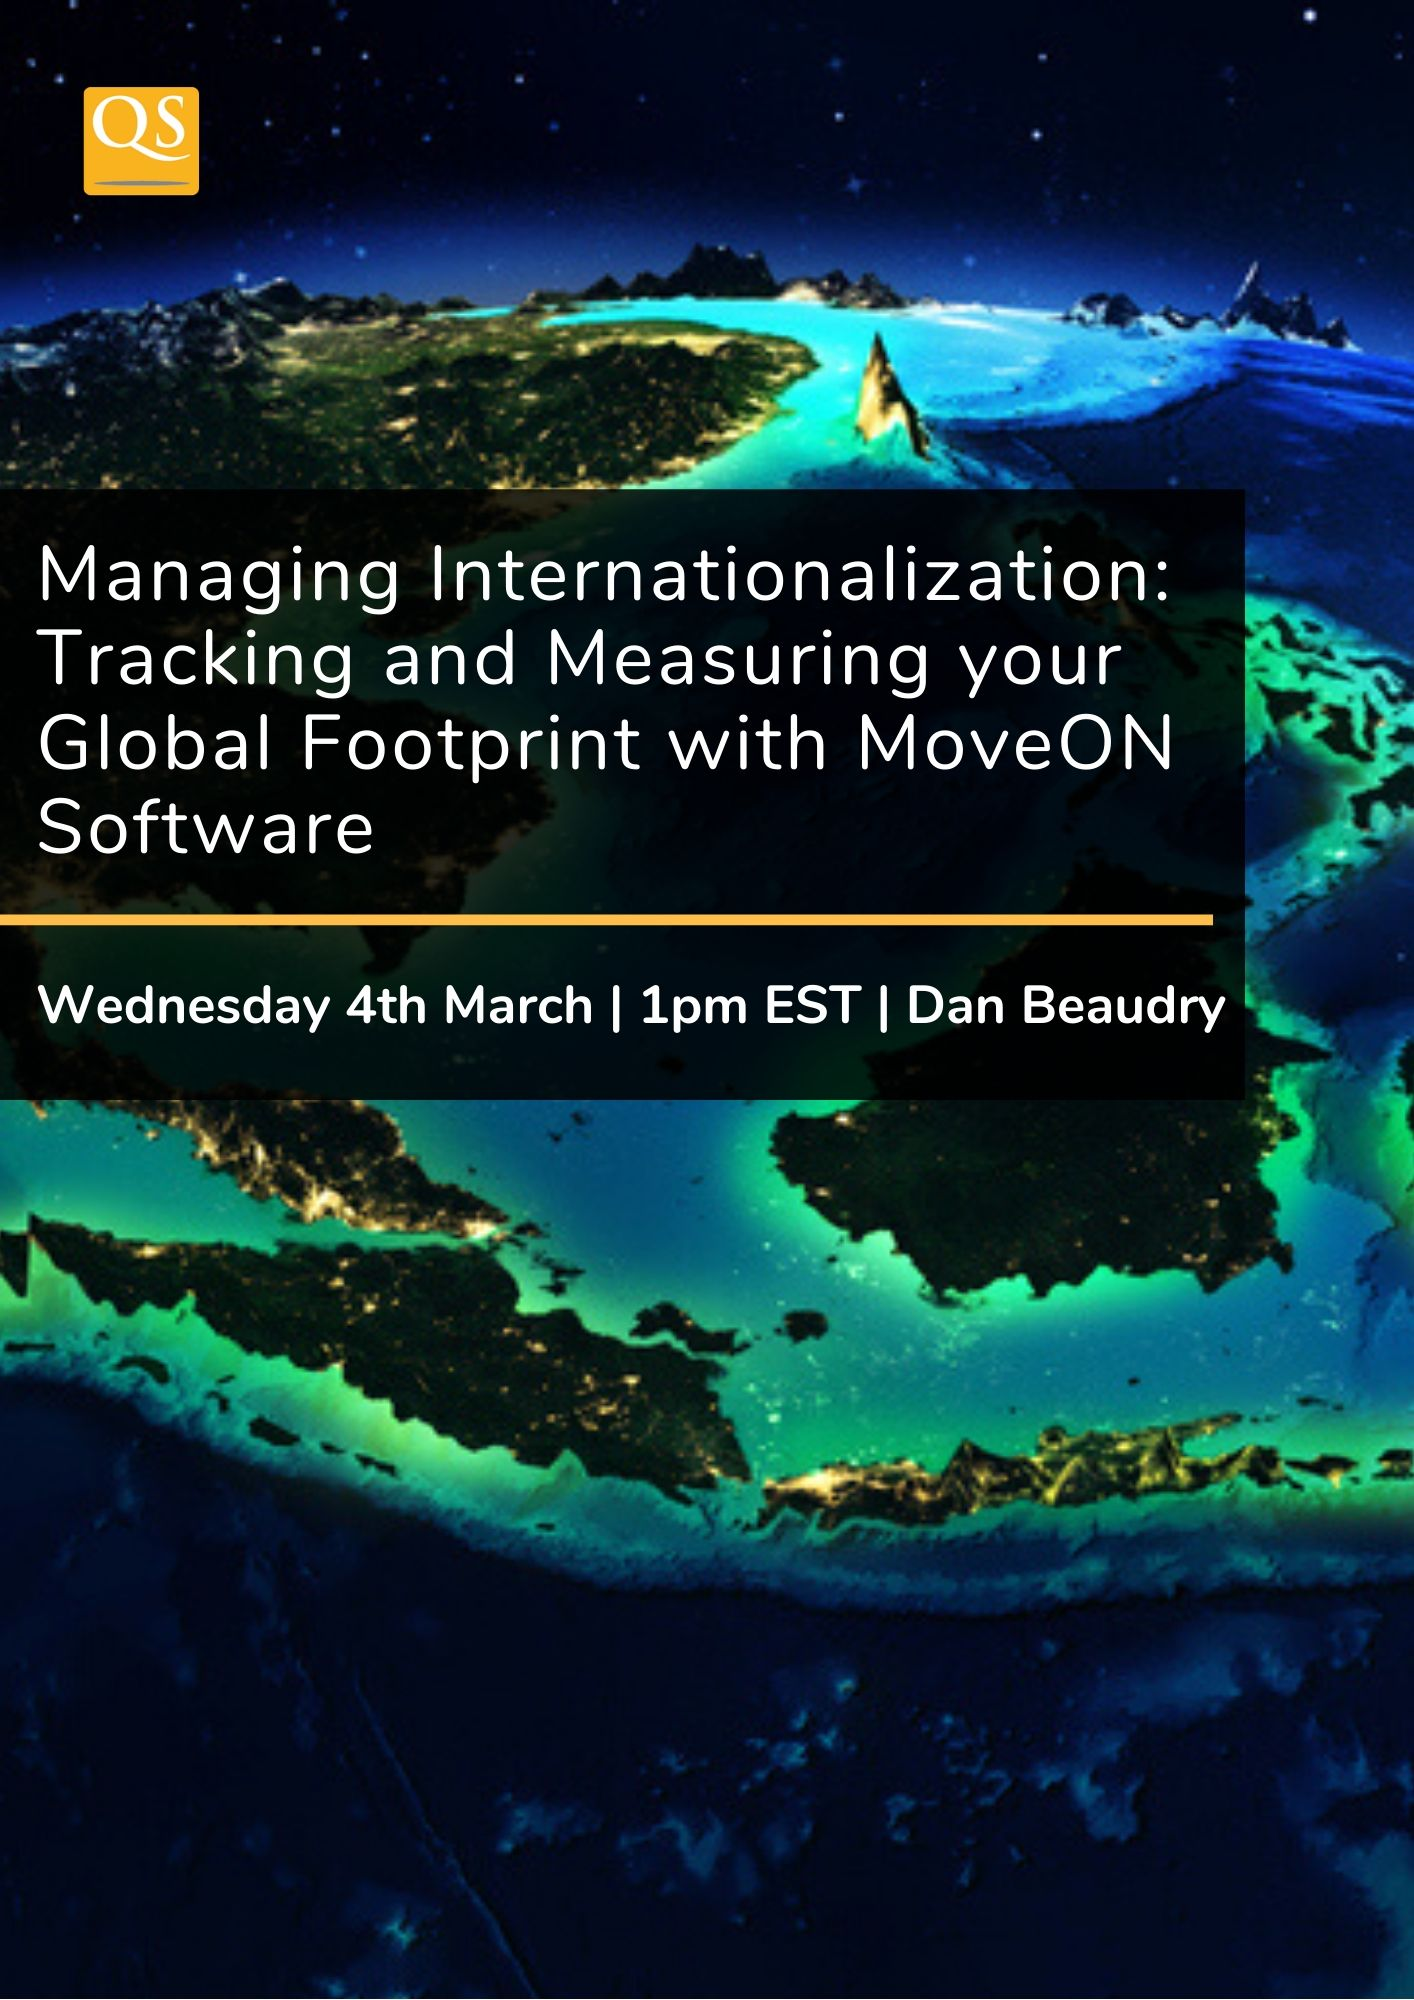 Managing-internationalization-with-MoveON-software